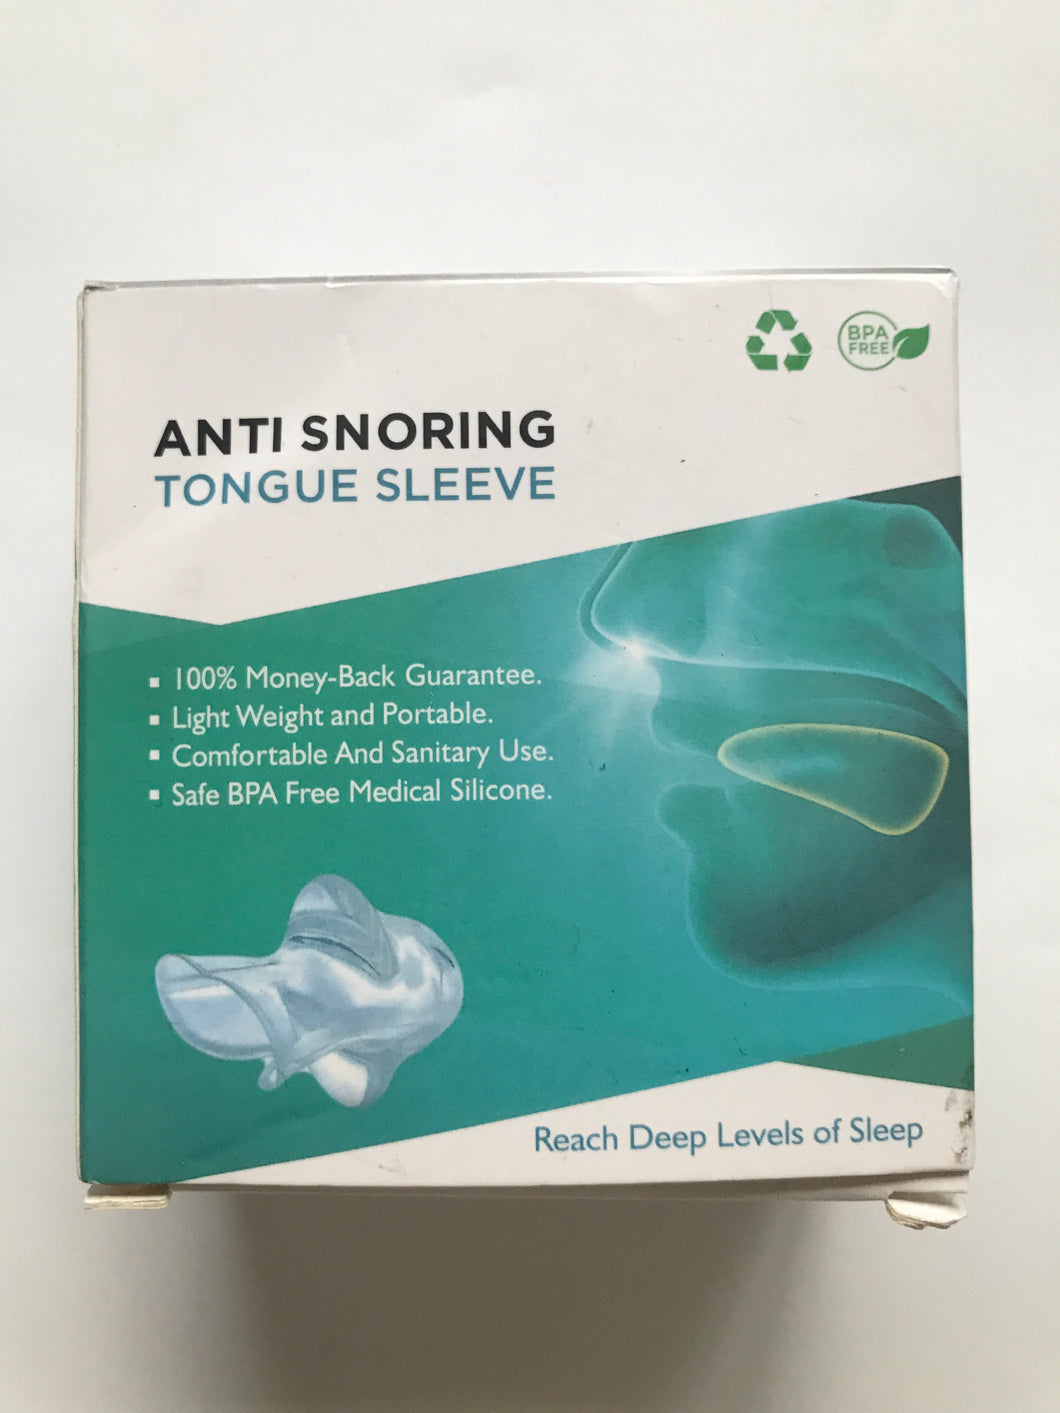 Anti Snoring Tongue Sleeve